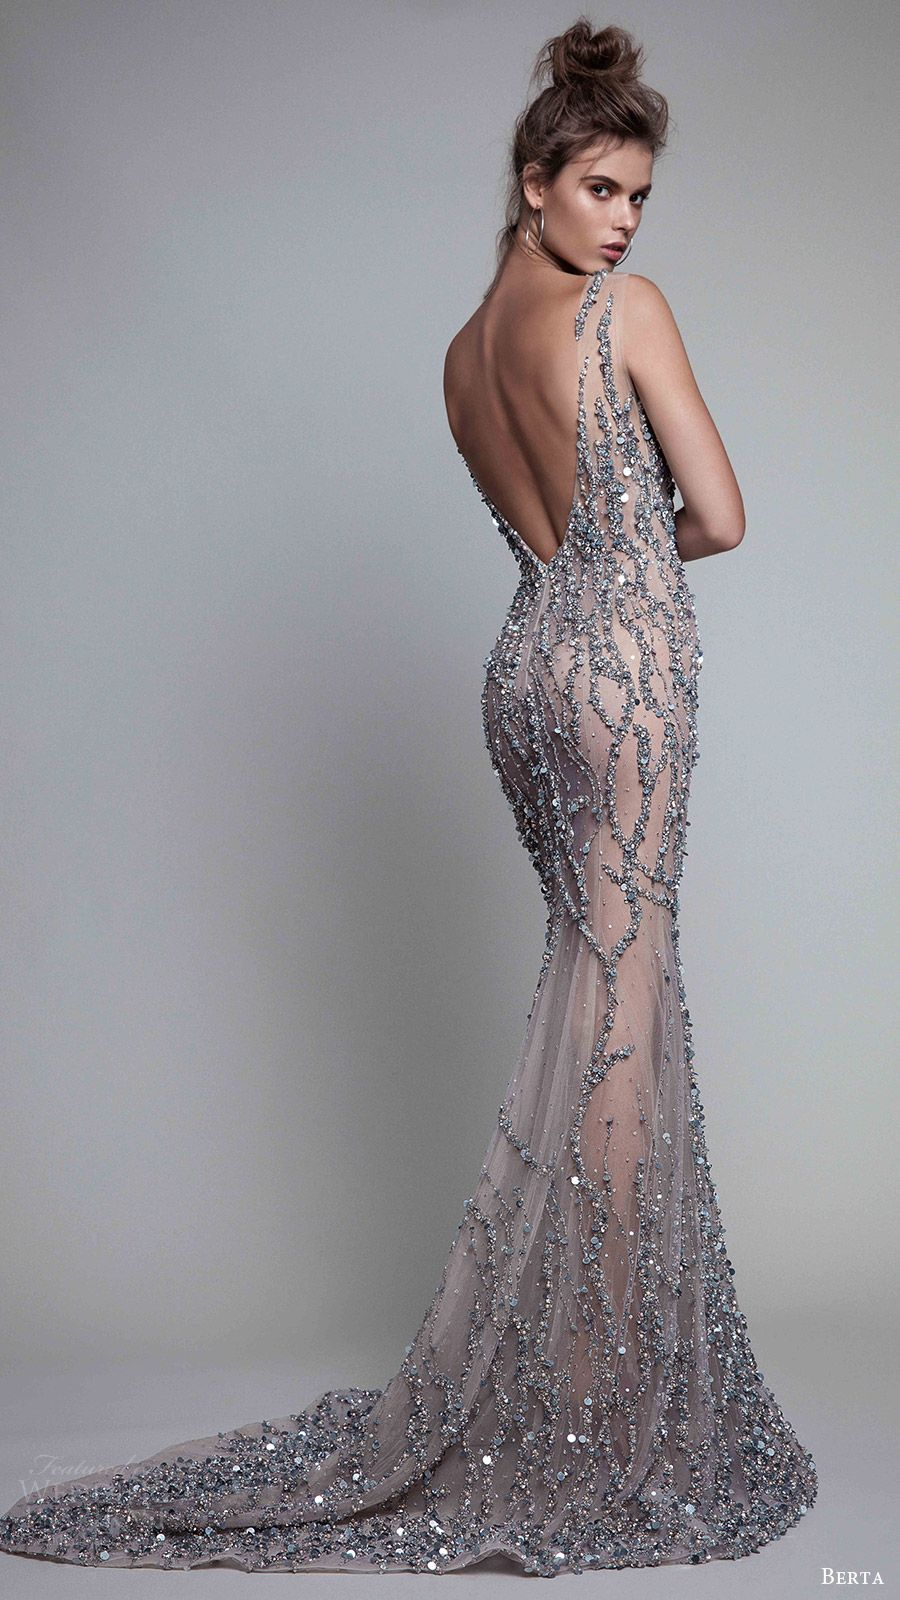 ac7b6256590 berta rtw fall 2017 (17 10) sleeveless illusion bateau neck beaded trumpet evening  dresses bv